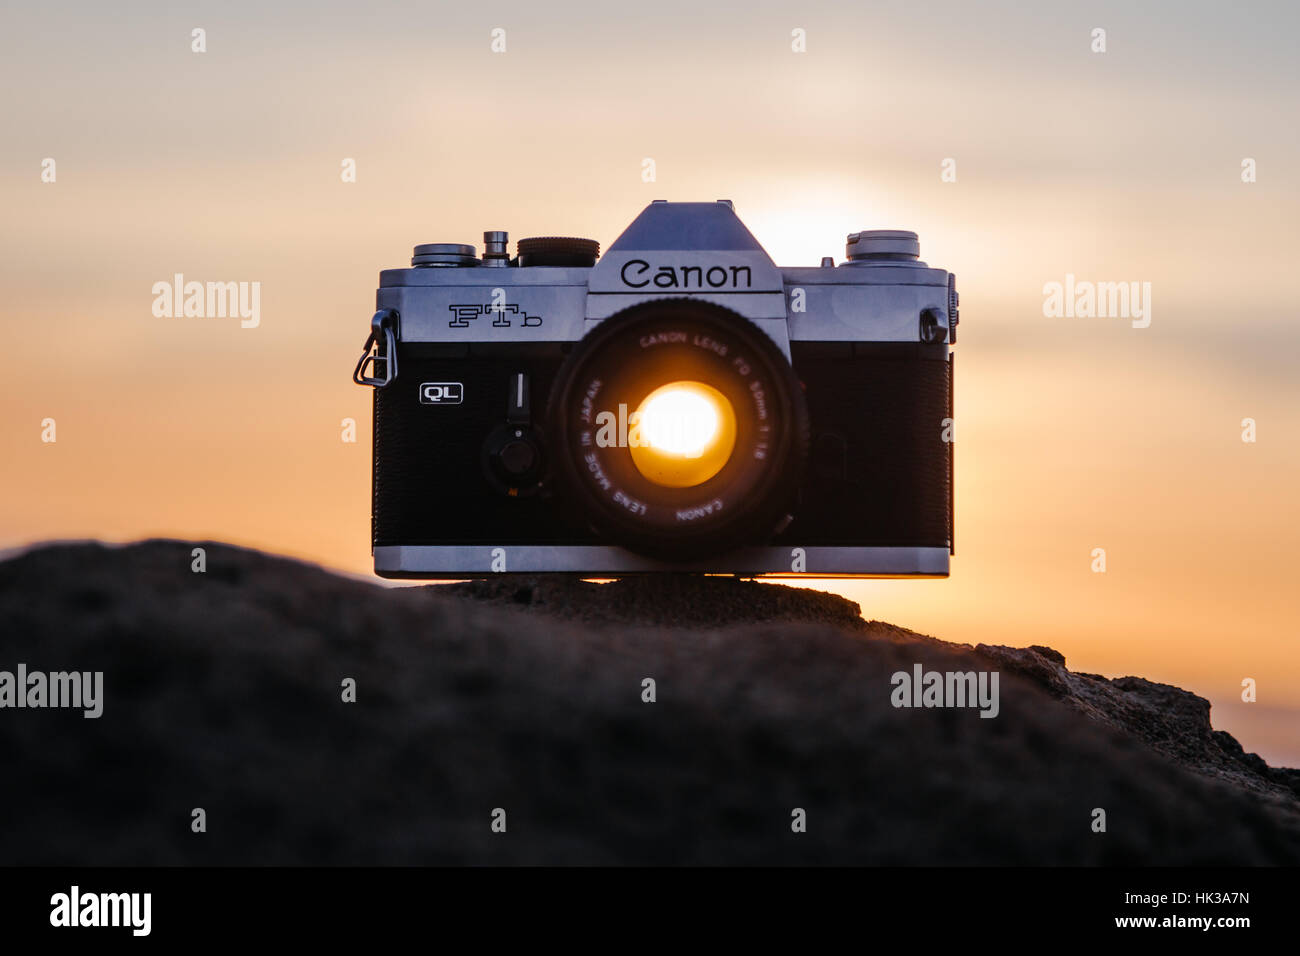 Sunset through Canon FTB lens, camera on a rock - Stock Image